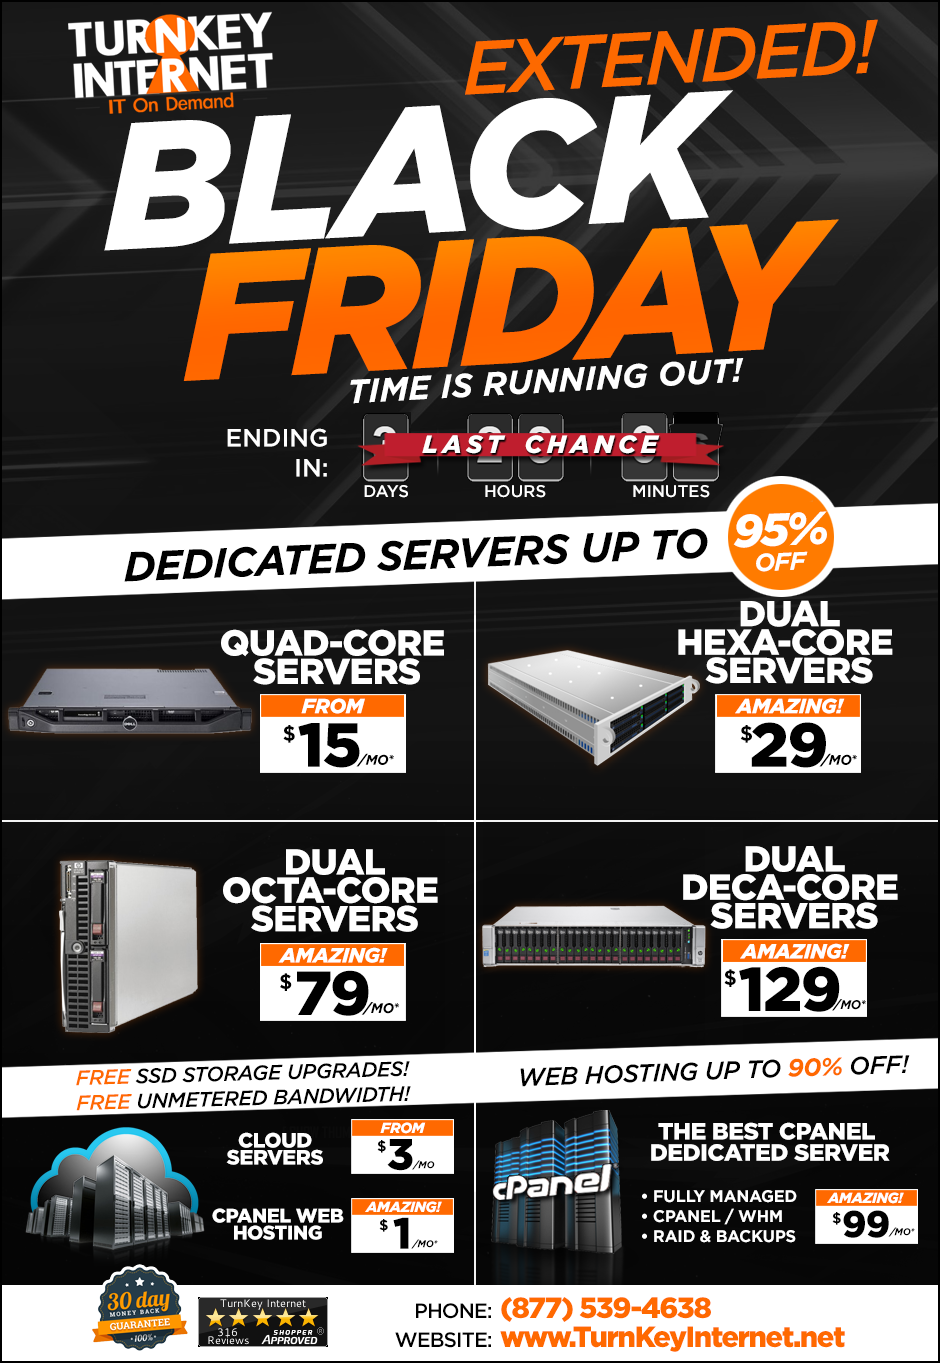 Turnkey Internet Black Friday Prices Last Chance Milled